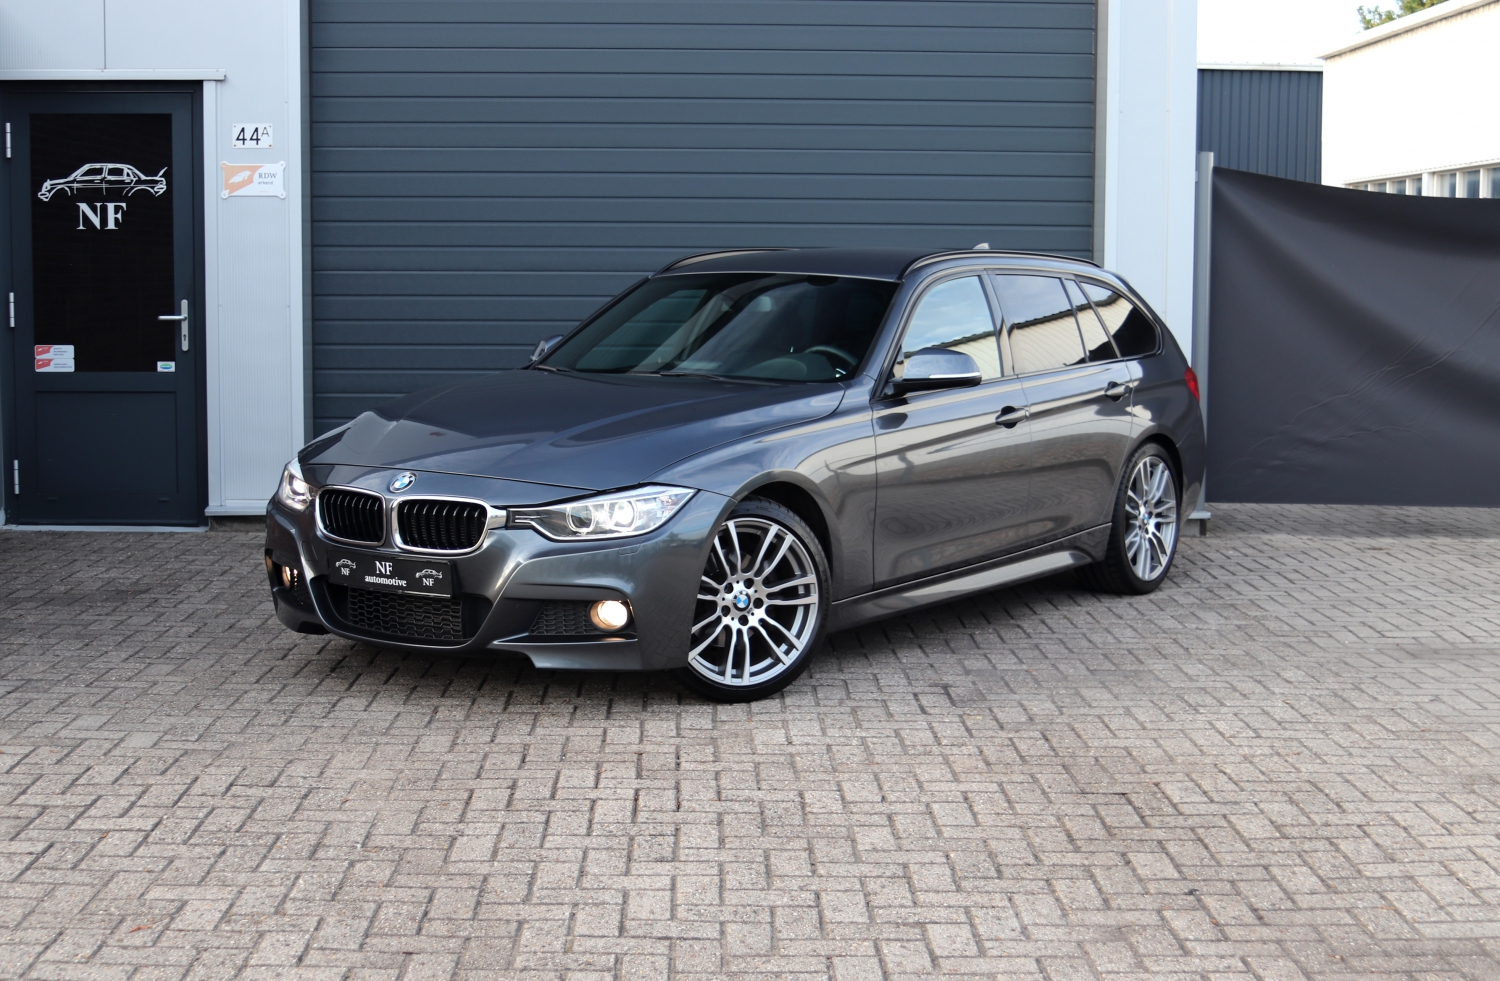 bmw 320d touring f31 m sportpakket kopen bij nf automotive. Black Bedroom Furniture Sets. Home Design Ideas